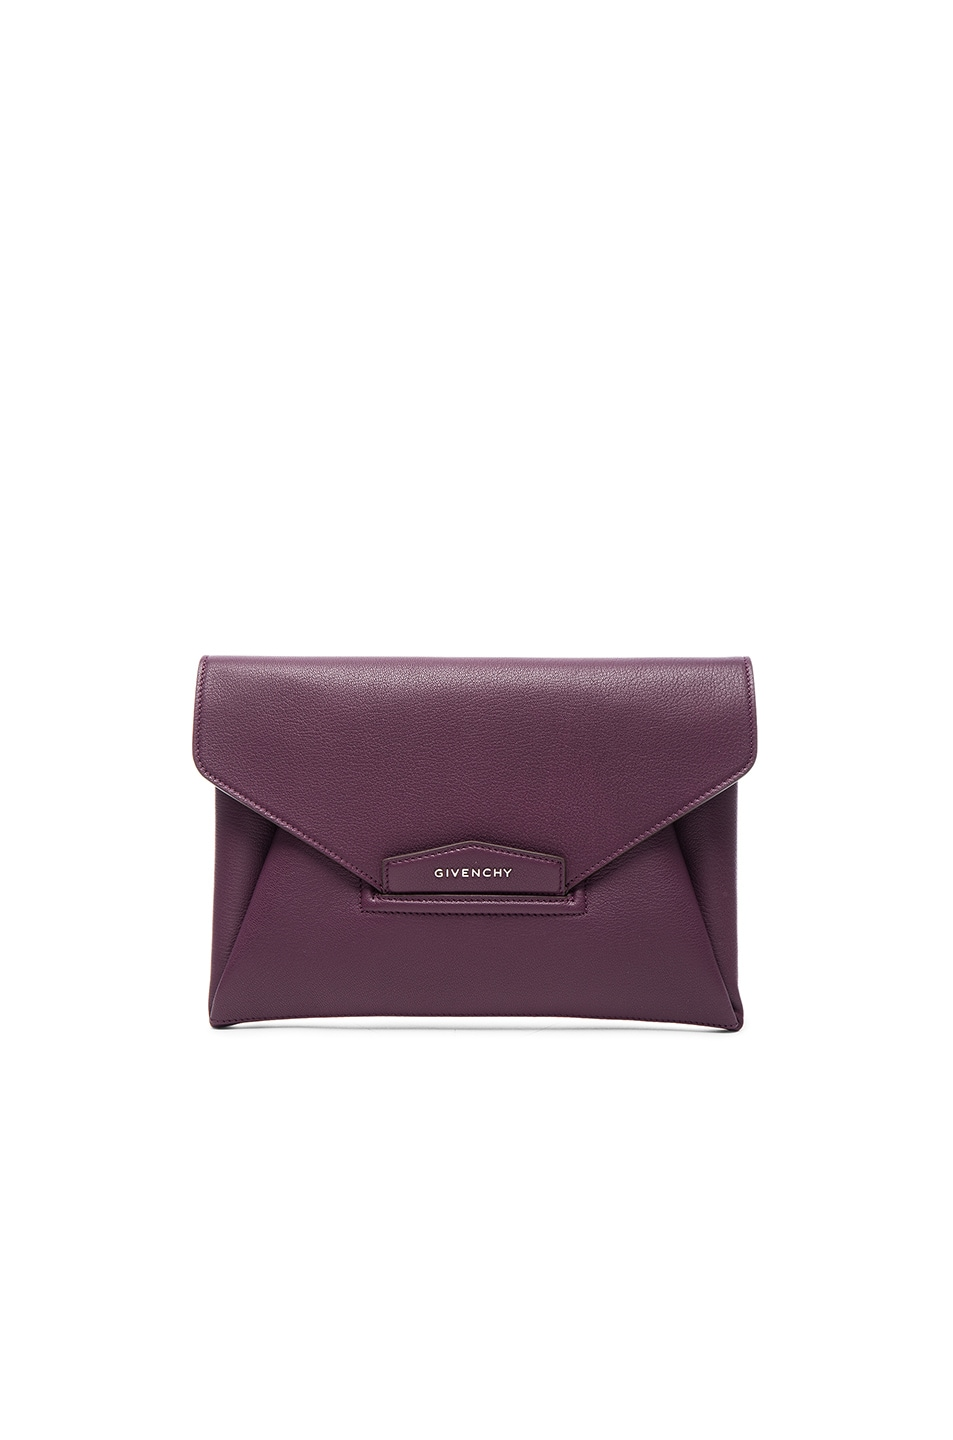 Image 1 of Givenchy Medium Antigona Envelope Clutch in Dark Purple